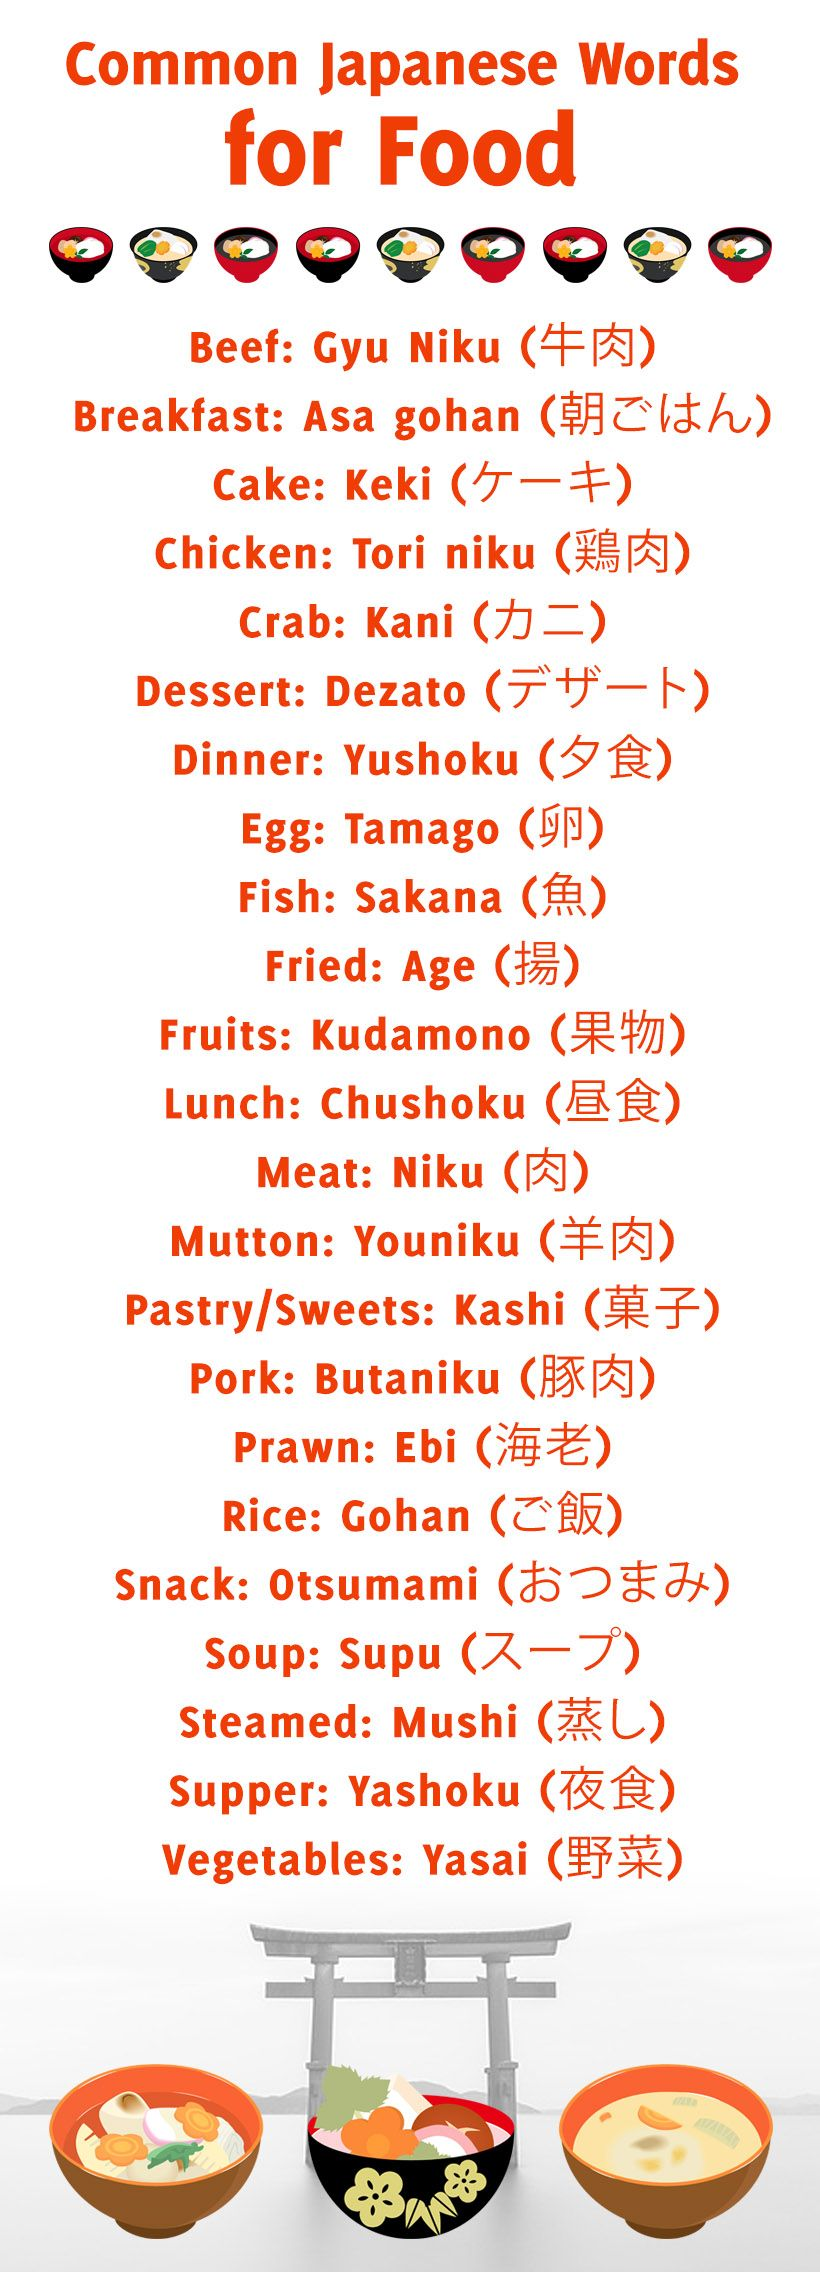 Learning Japanese: Common Japanese words for food, with Kanji.